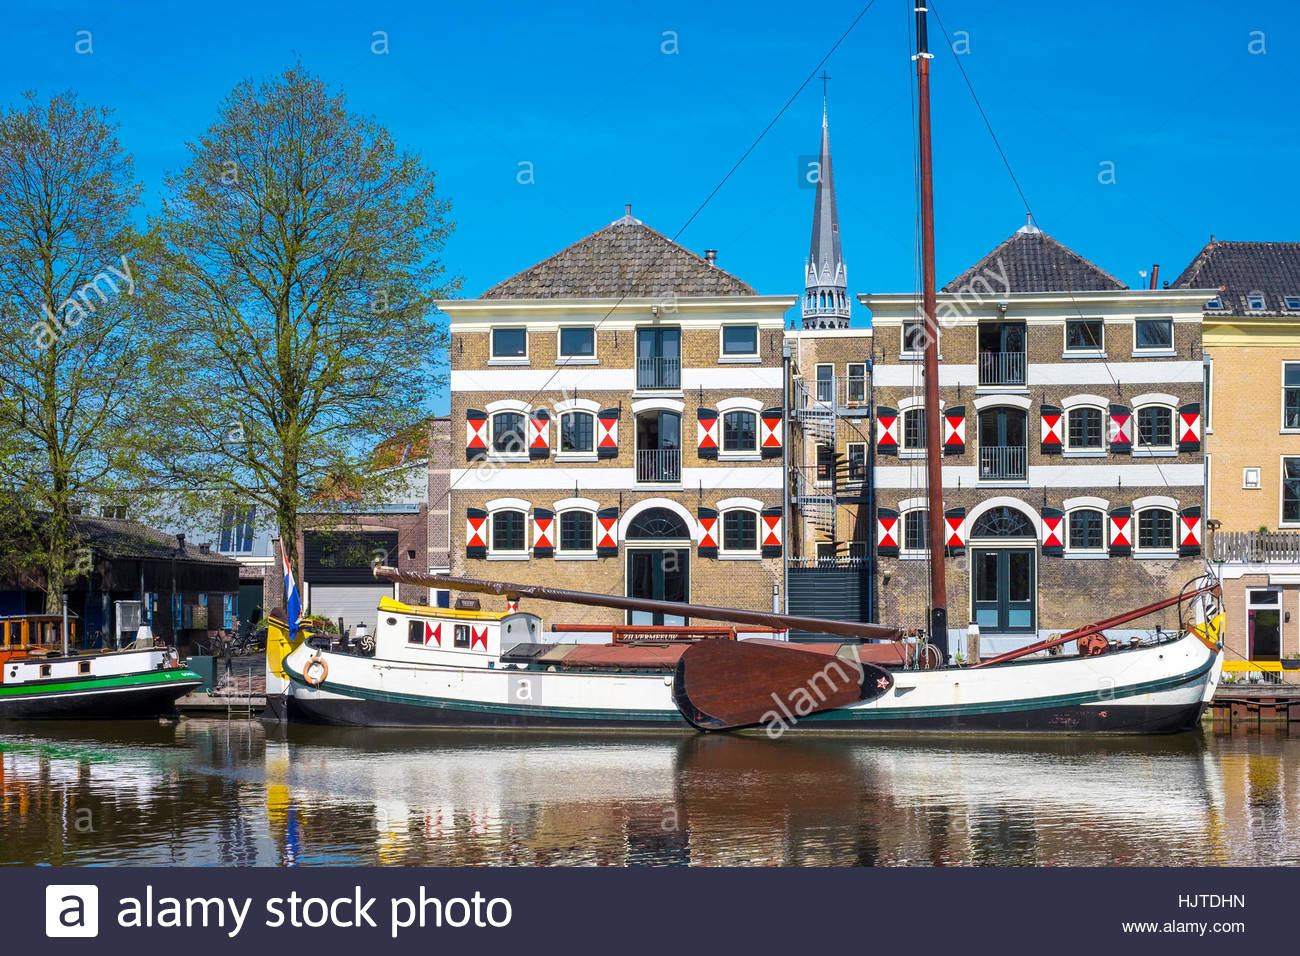 Netherlands, South Holland, Gouda. Historic ships and buildings on Binnenhavenmuseum Gouda harbor museum. Stock Photo